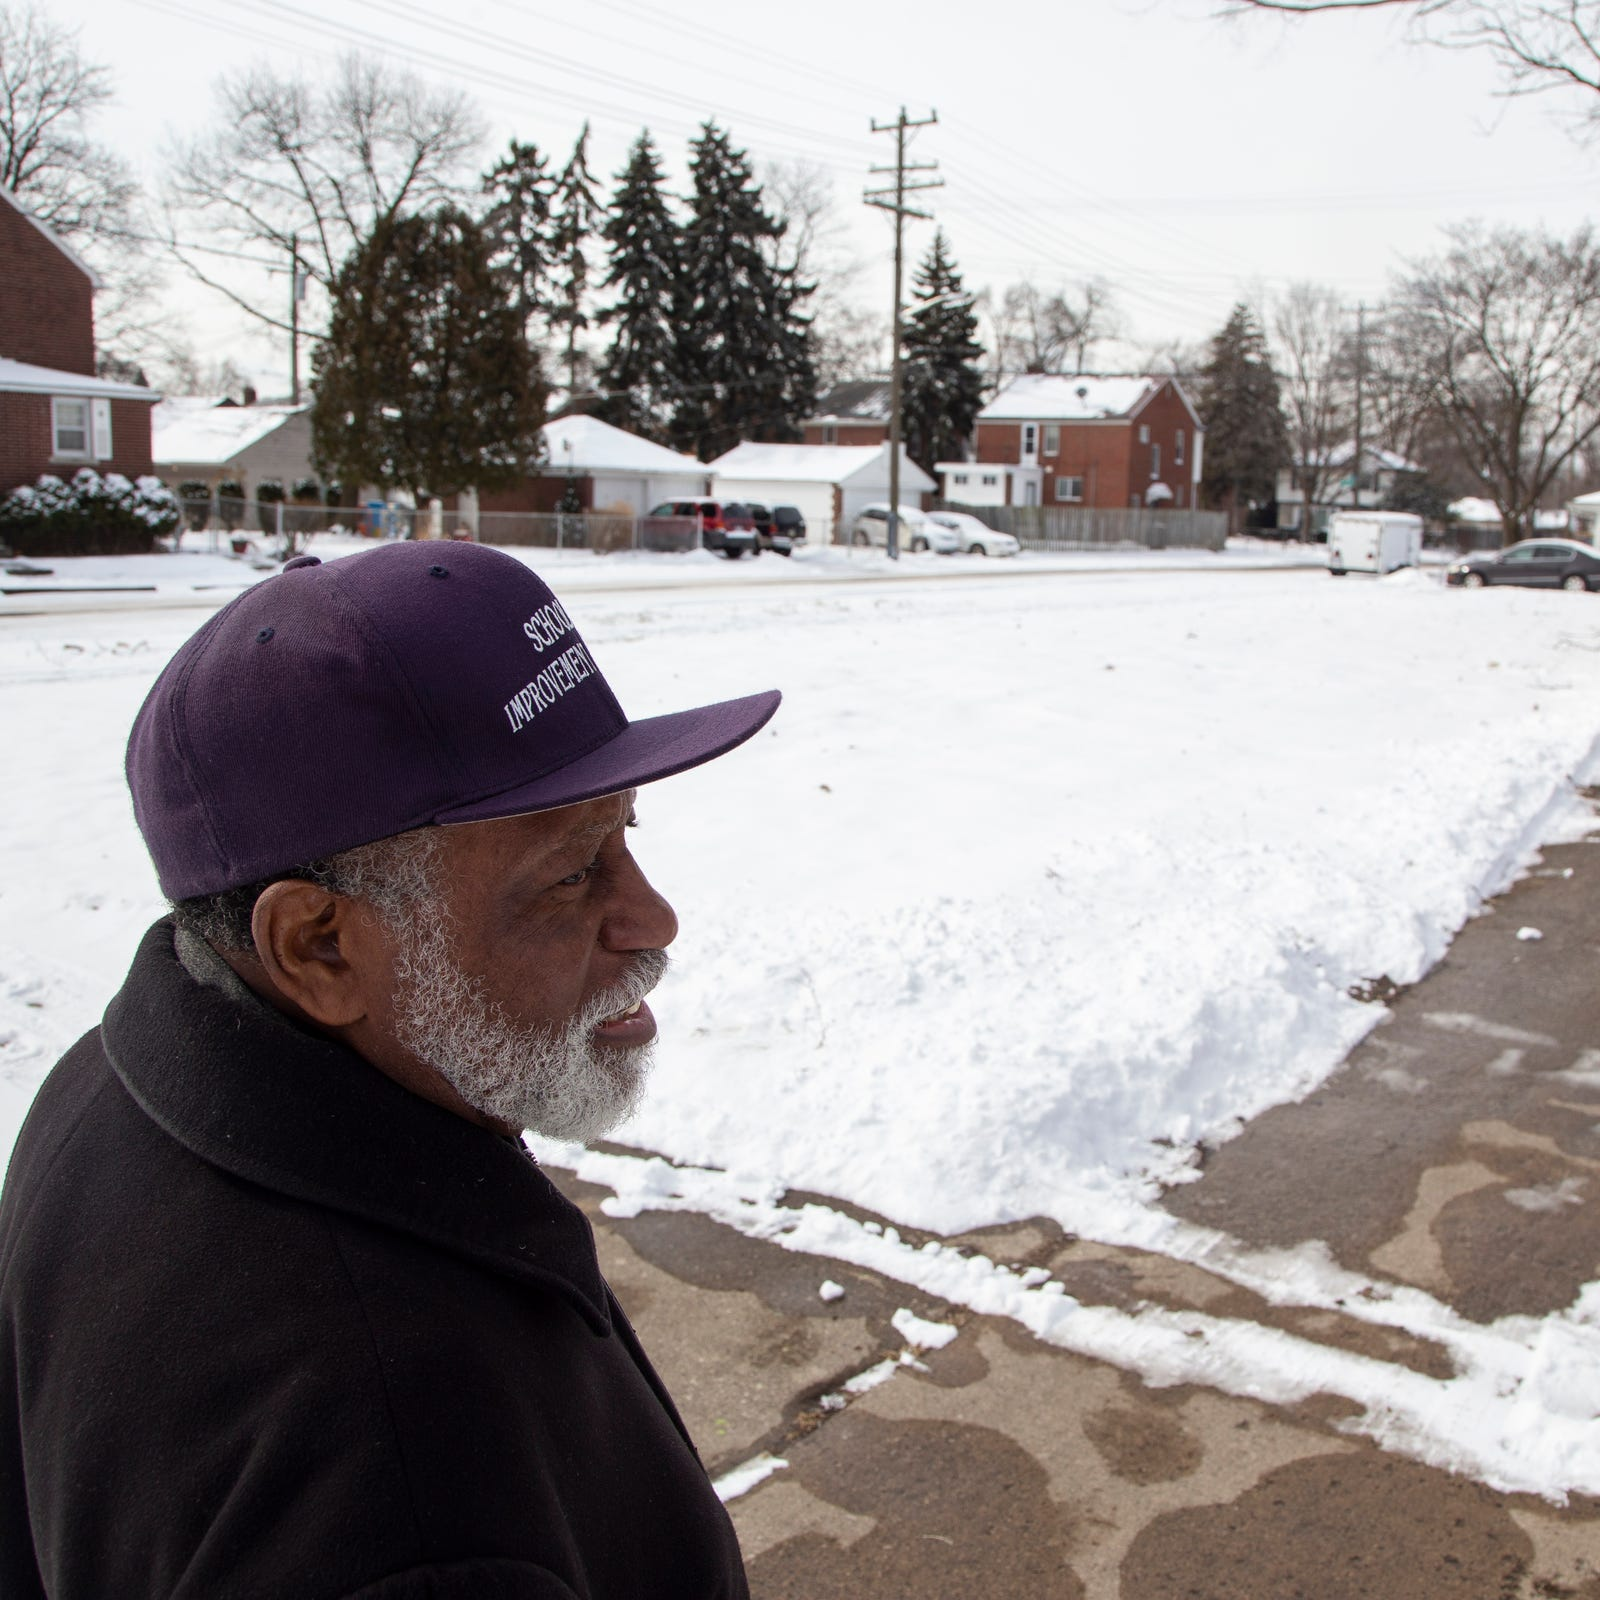 Study shows what happens after blight is removed from Detroit neighborhoods